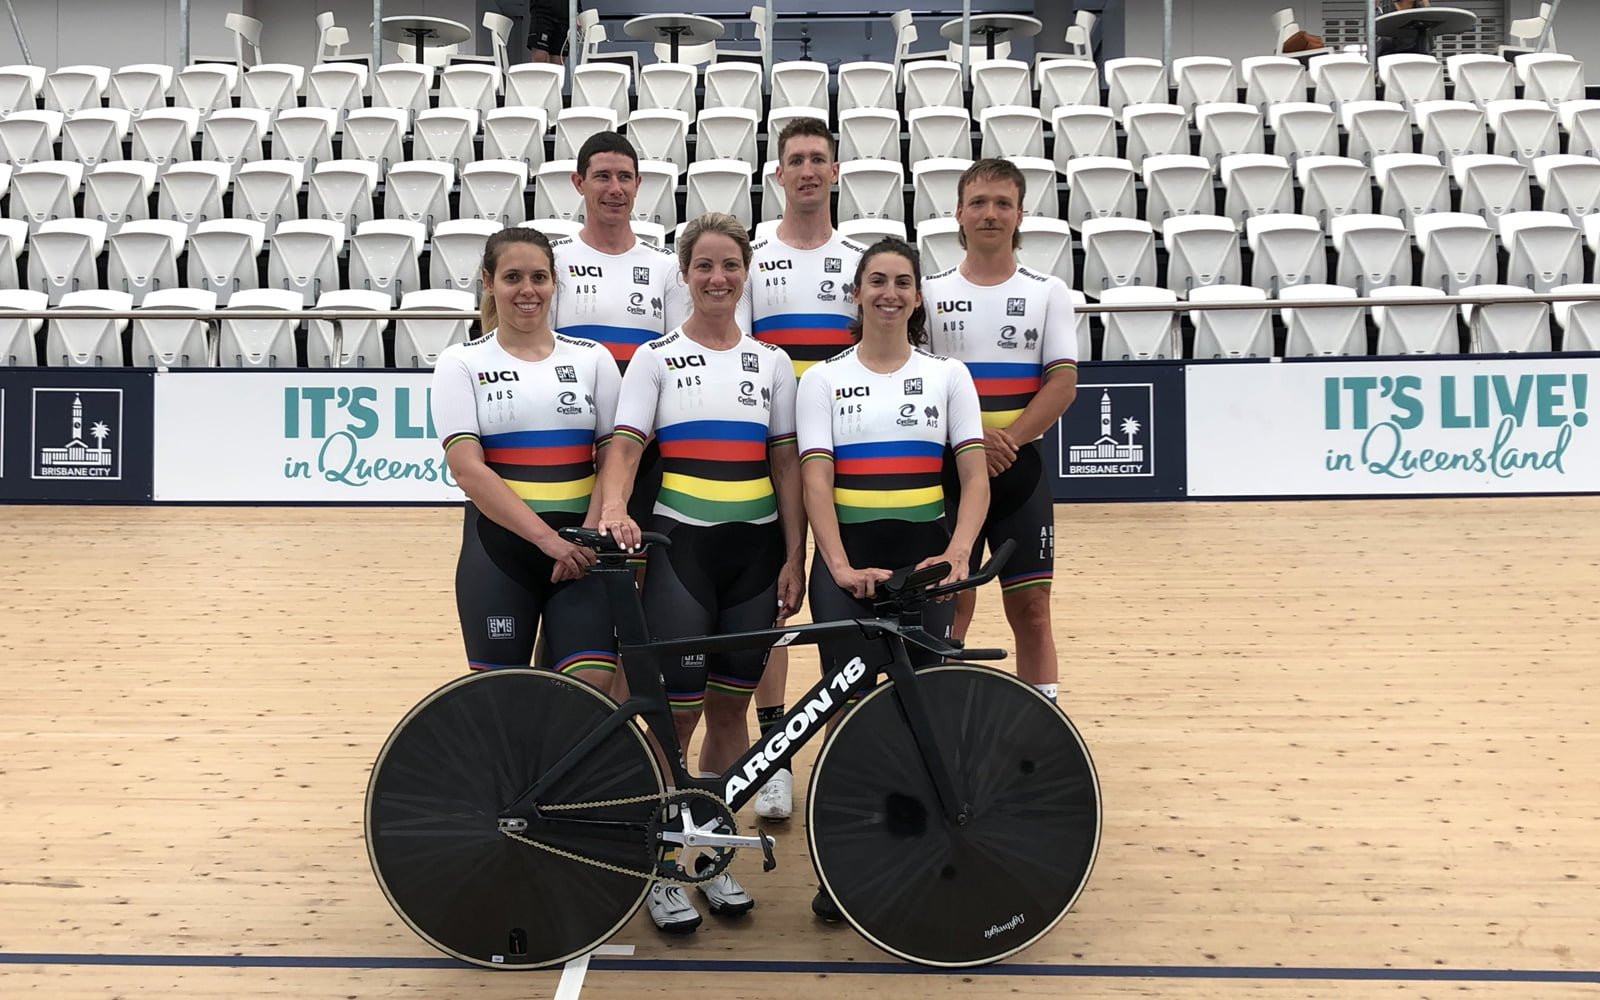 'The Group Itself Is The Strength': Hot Tussle For Para-cycling Selection